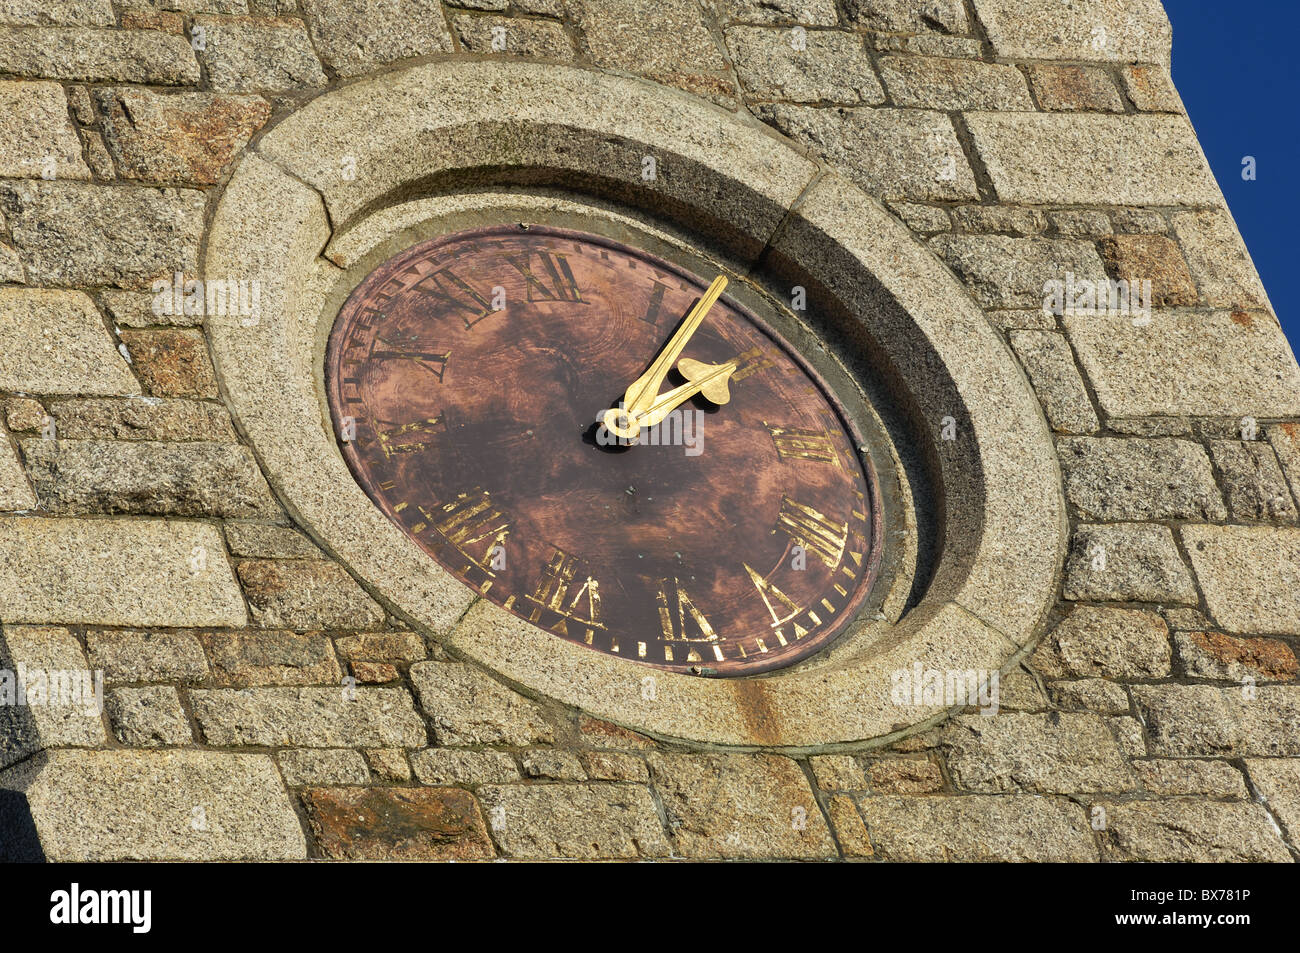 Old Clock Face - John Gollop - Stock Image